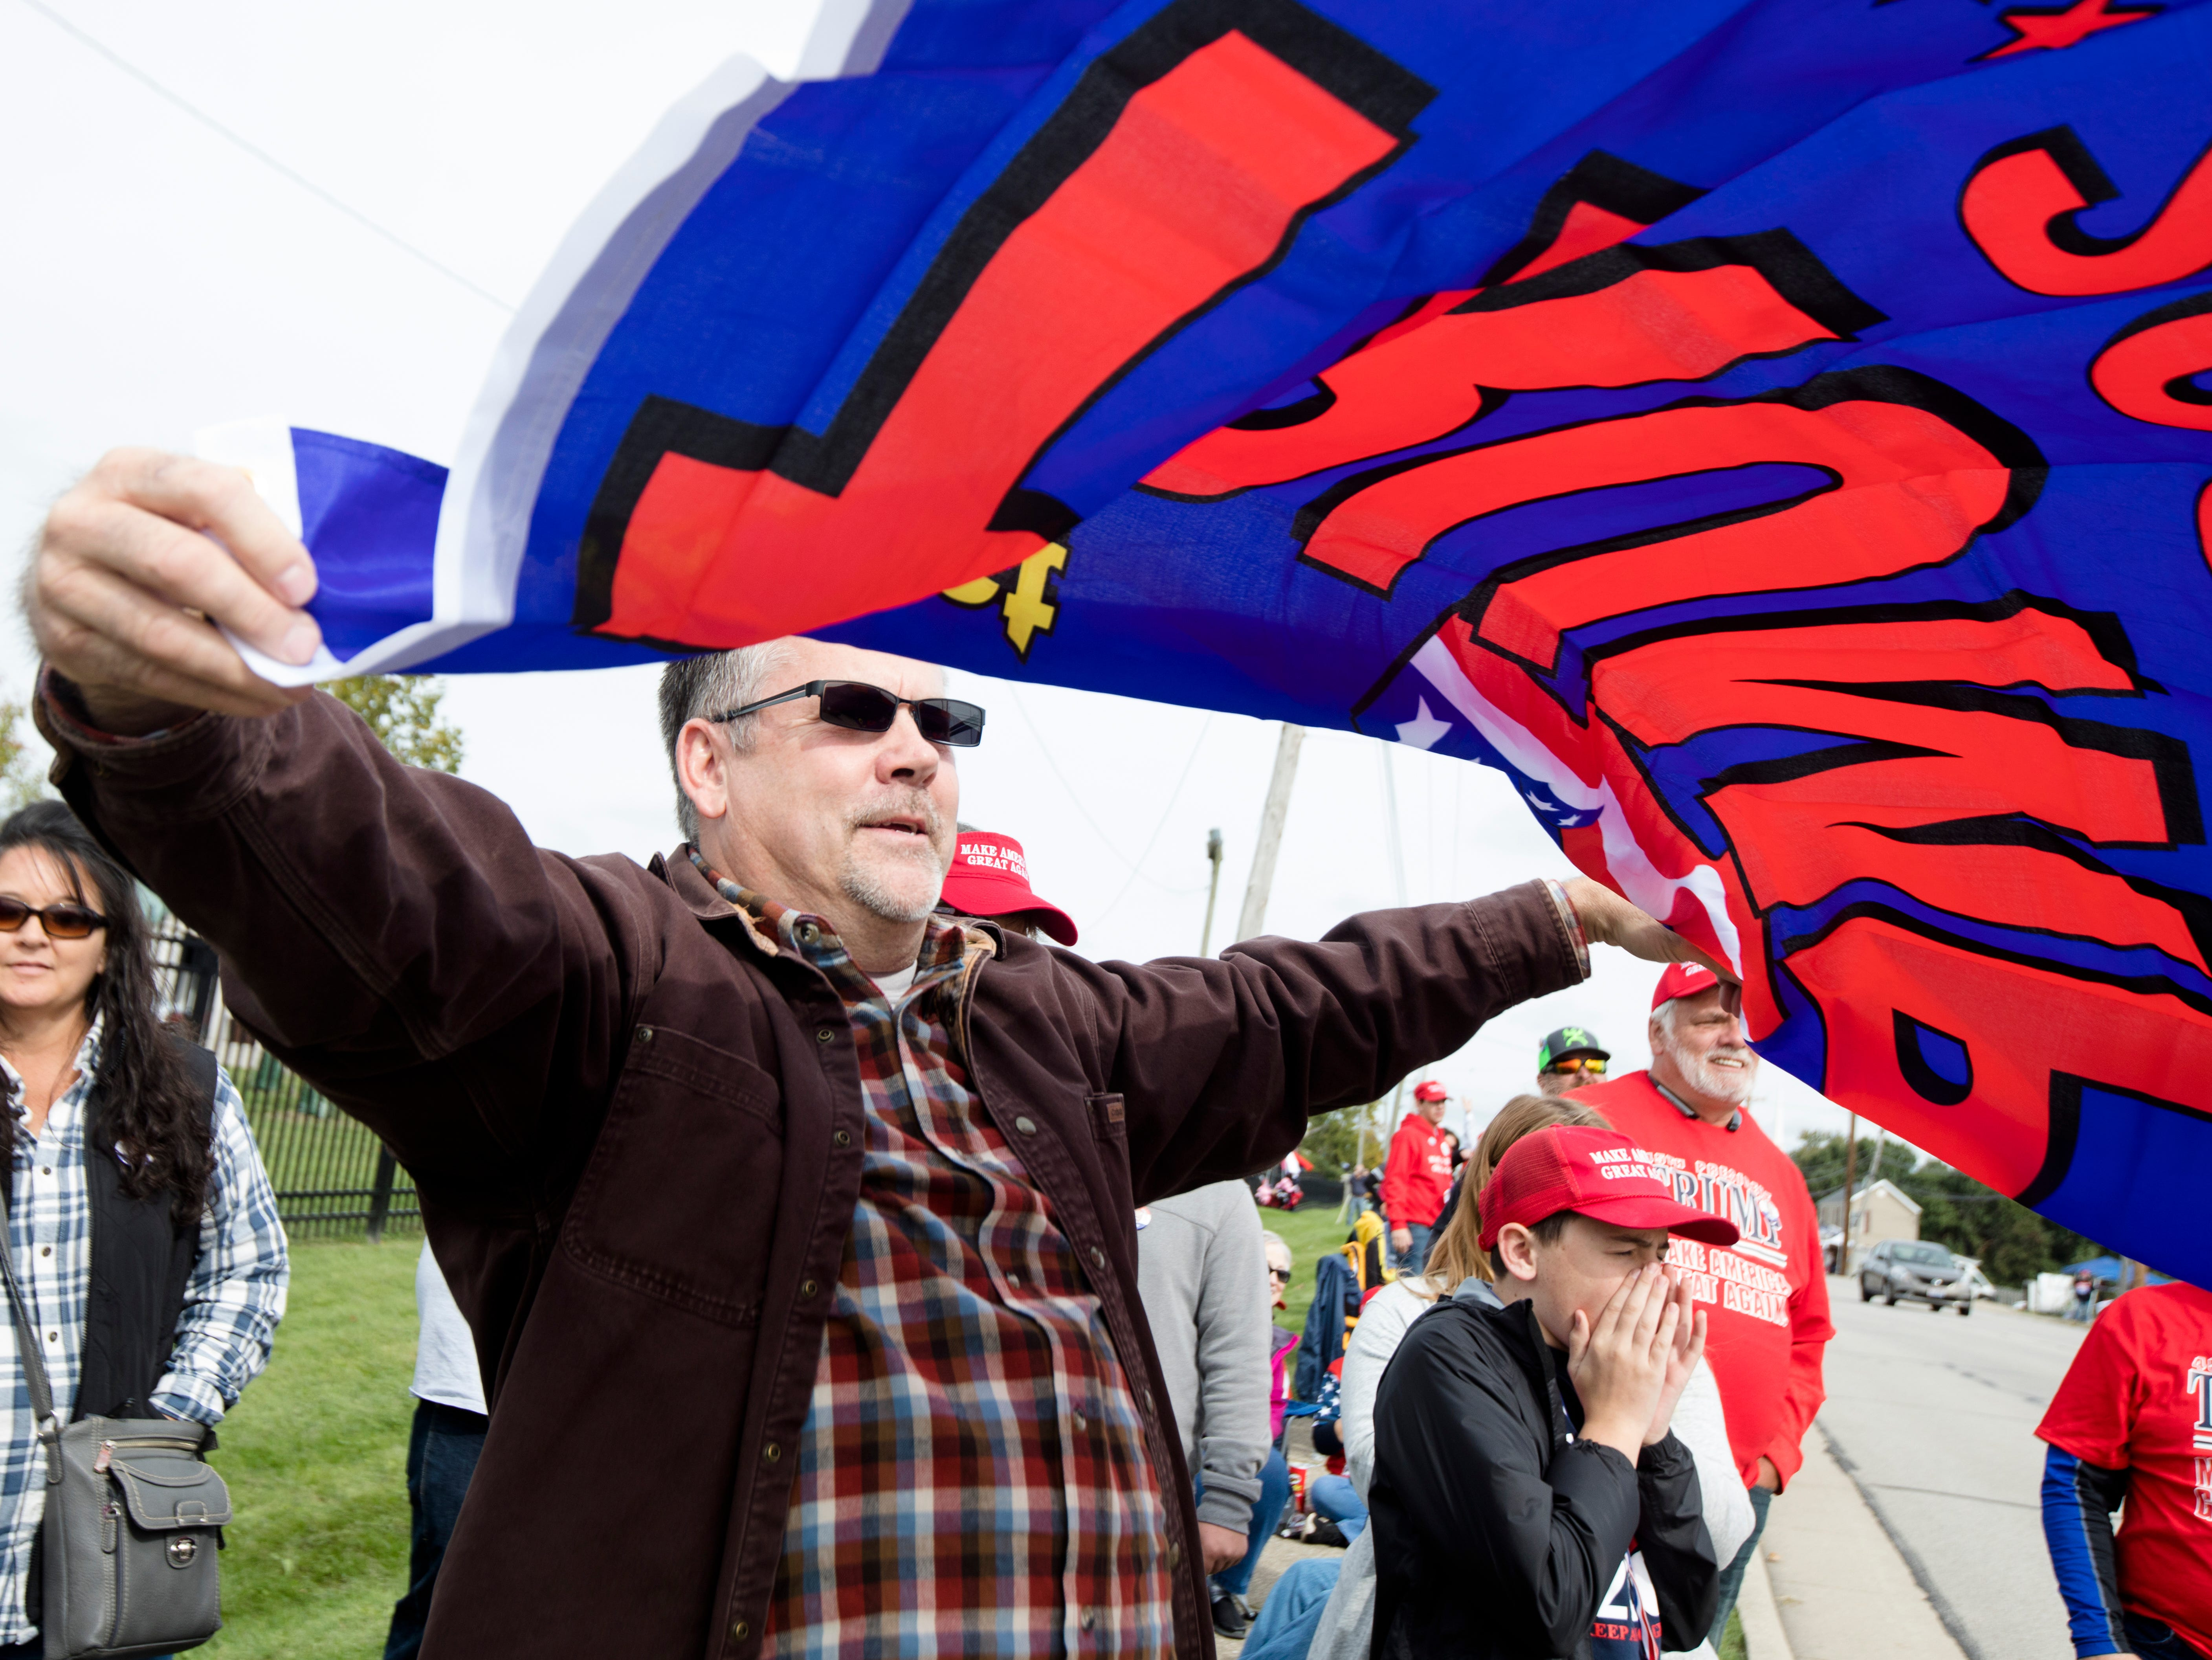 Chad Watson, of Hillsboro, Ohio, waives a flag in support of President Trump at traffic while waiting in line for President Donald J. Trump's Make America Great Again Rally in Lebanon, Ohio, on Friday, Oct. 12, 2018.